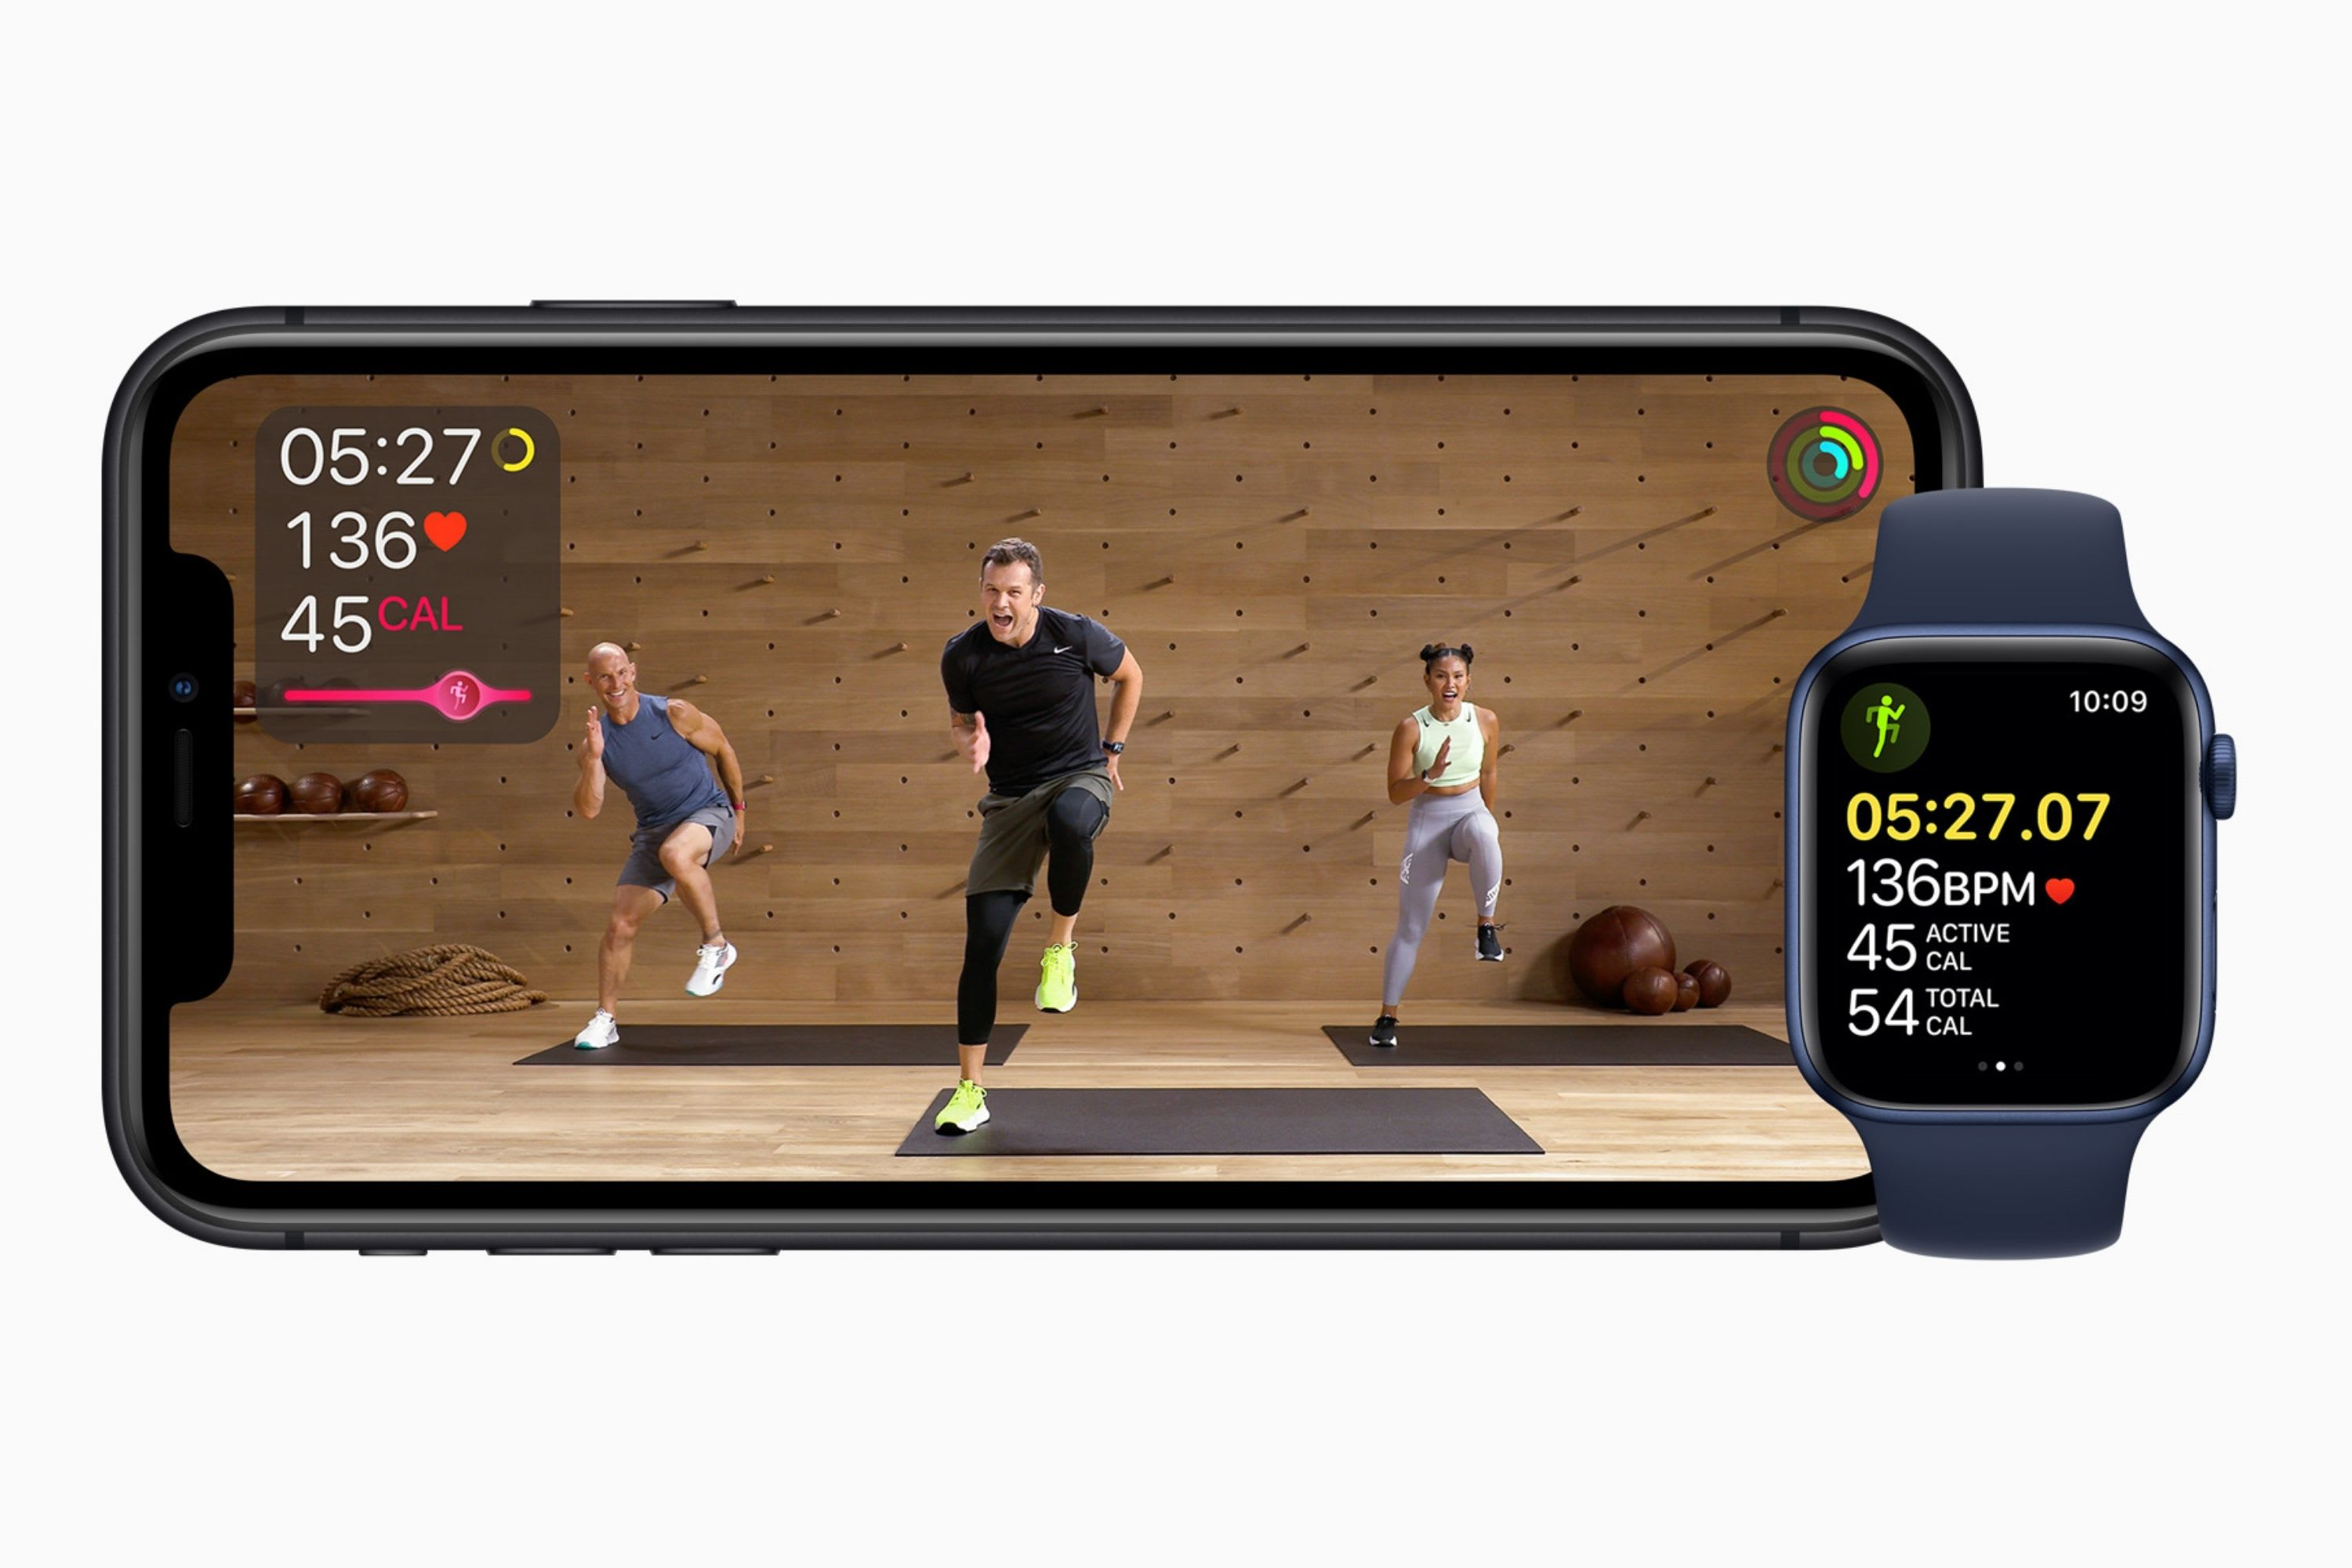 appleone-and-family-setup-coming-to-watchos-7-and-ipados-14-20200915-2